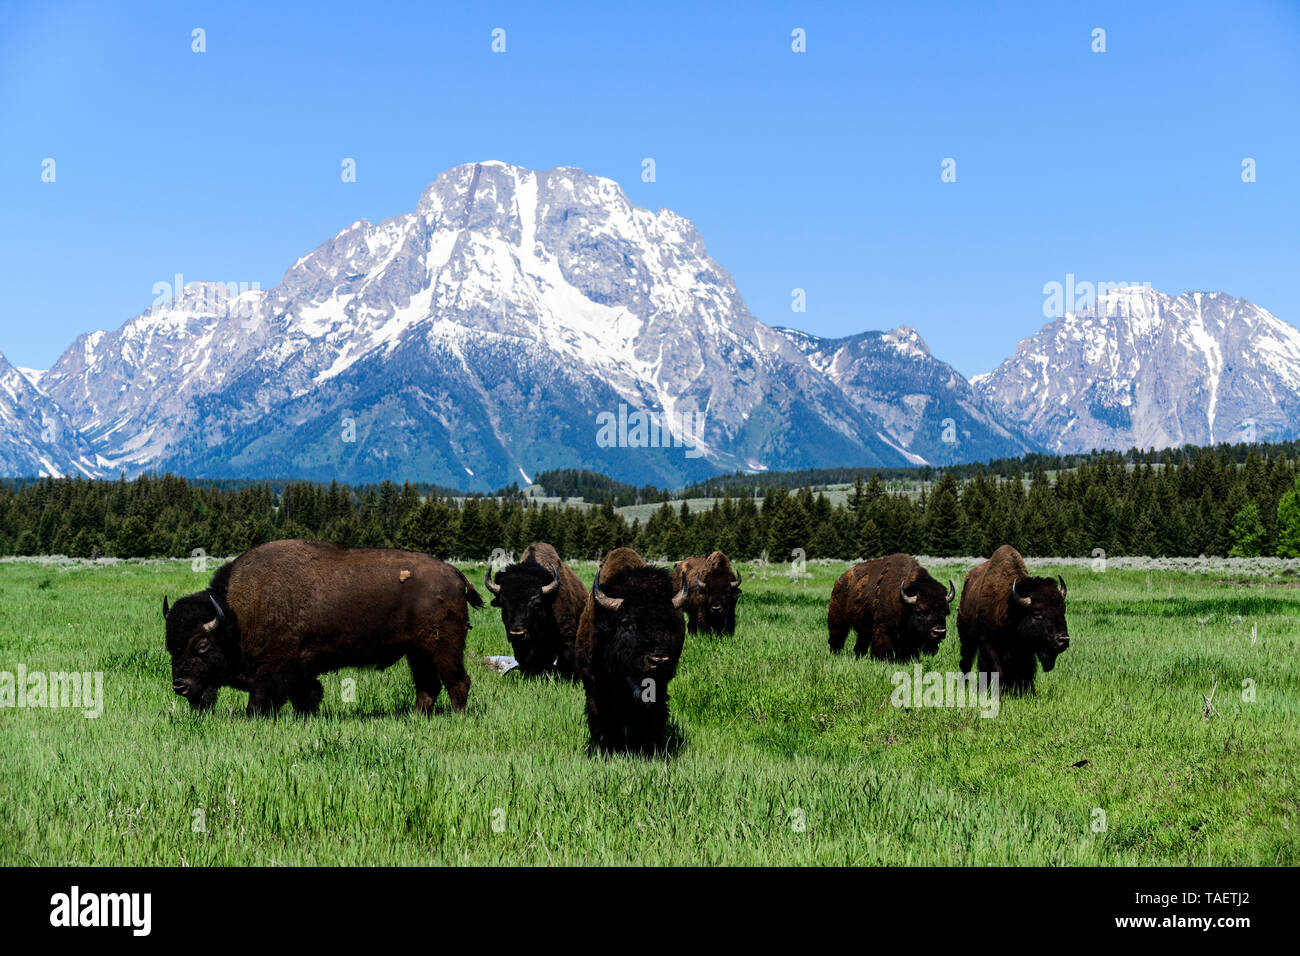 A herd of bison in a field with Mt. Moran in the background in Grand Teton National Park near Jackson Hole, Wyoming USA. Stock Photo